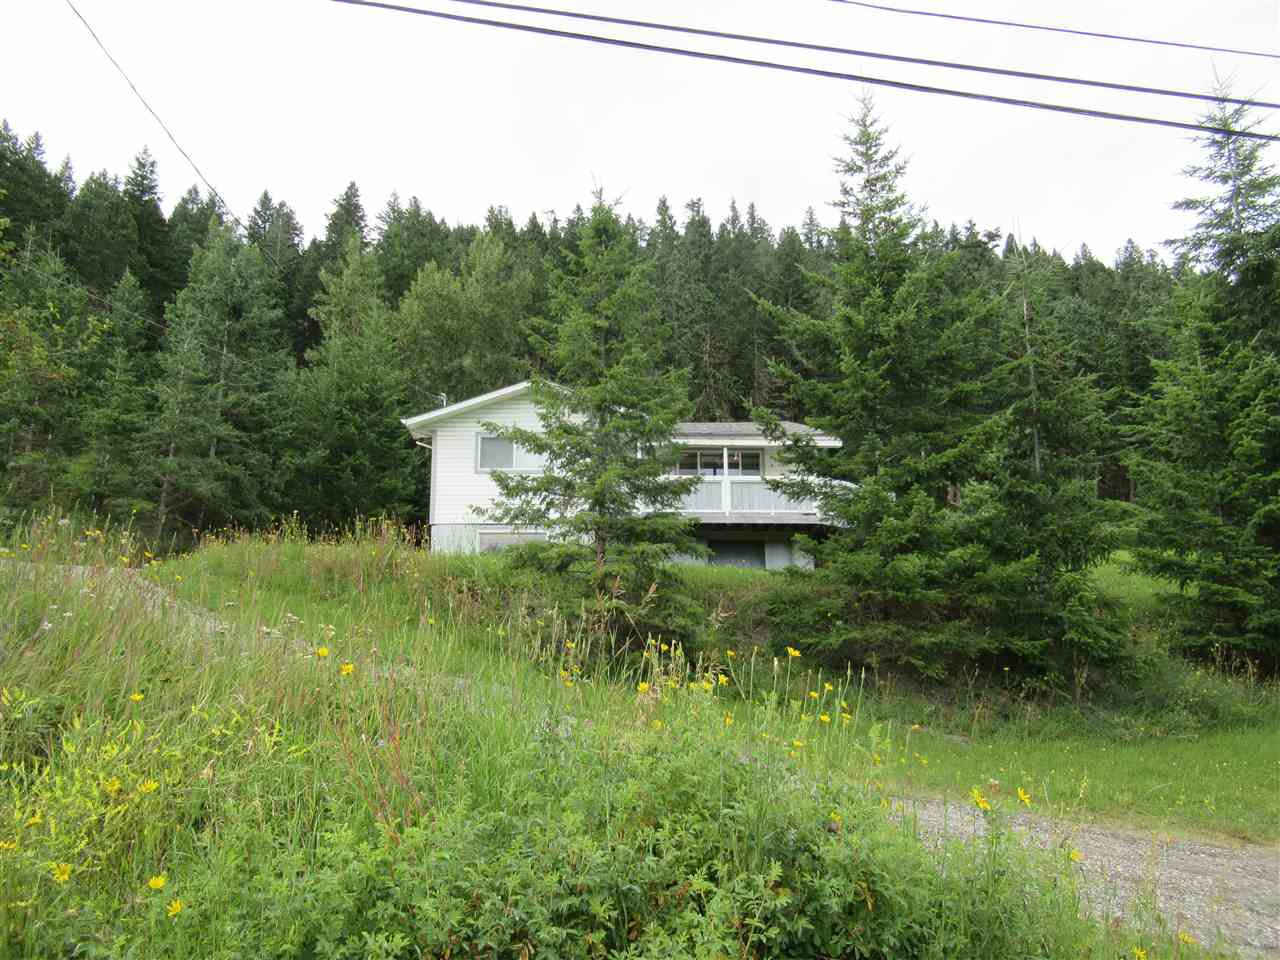 Photo 25: Photos: 3035 FIRDALE Drive in Williams Lake: Williams Lake - Rural North House for sale (Williams Lake (Zone 27))  : MLS®# R2484738